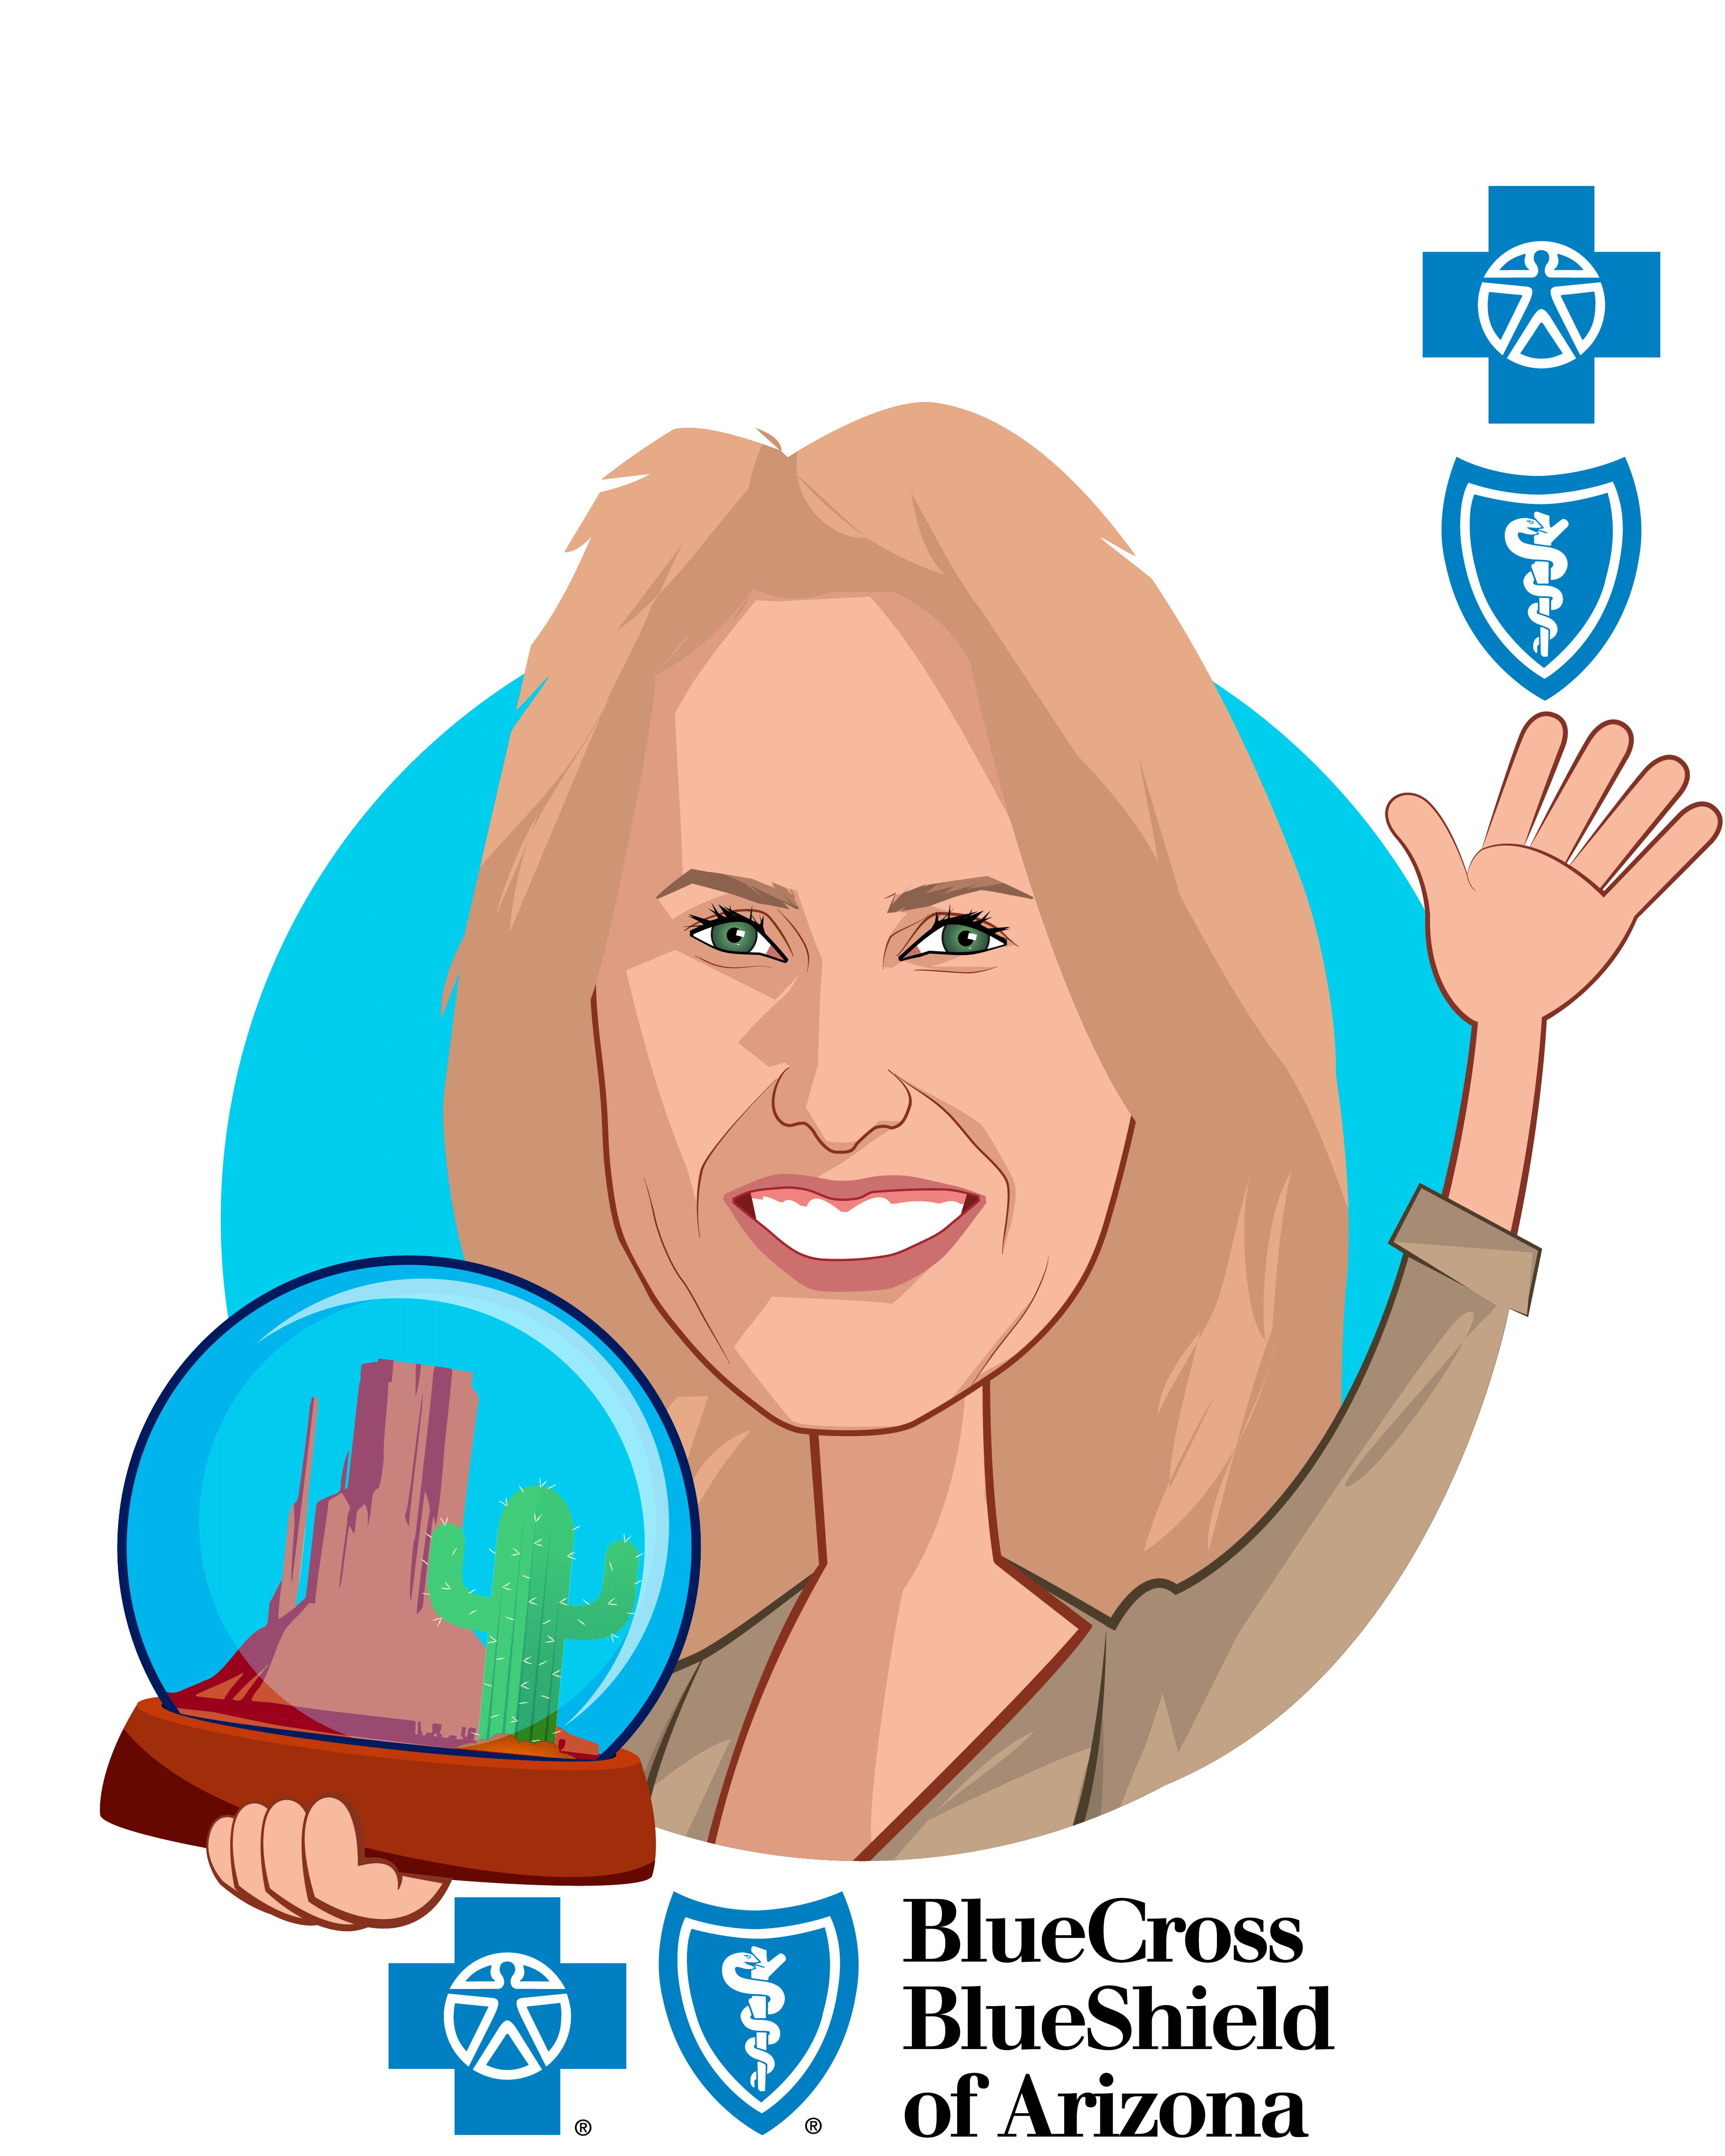 Overlay caricature of Pam Kehaly, who is speaking at HLTH and is President & CEO at Blue Cross Blue Shield of Arizona